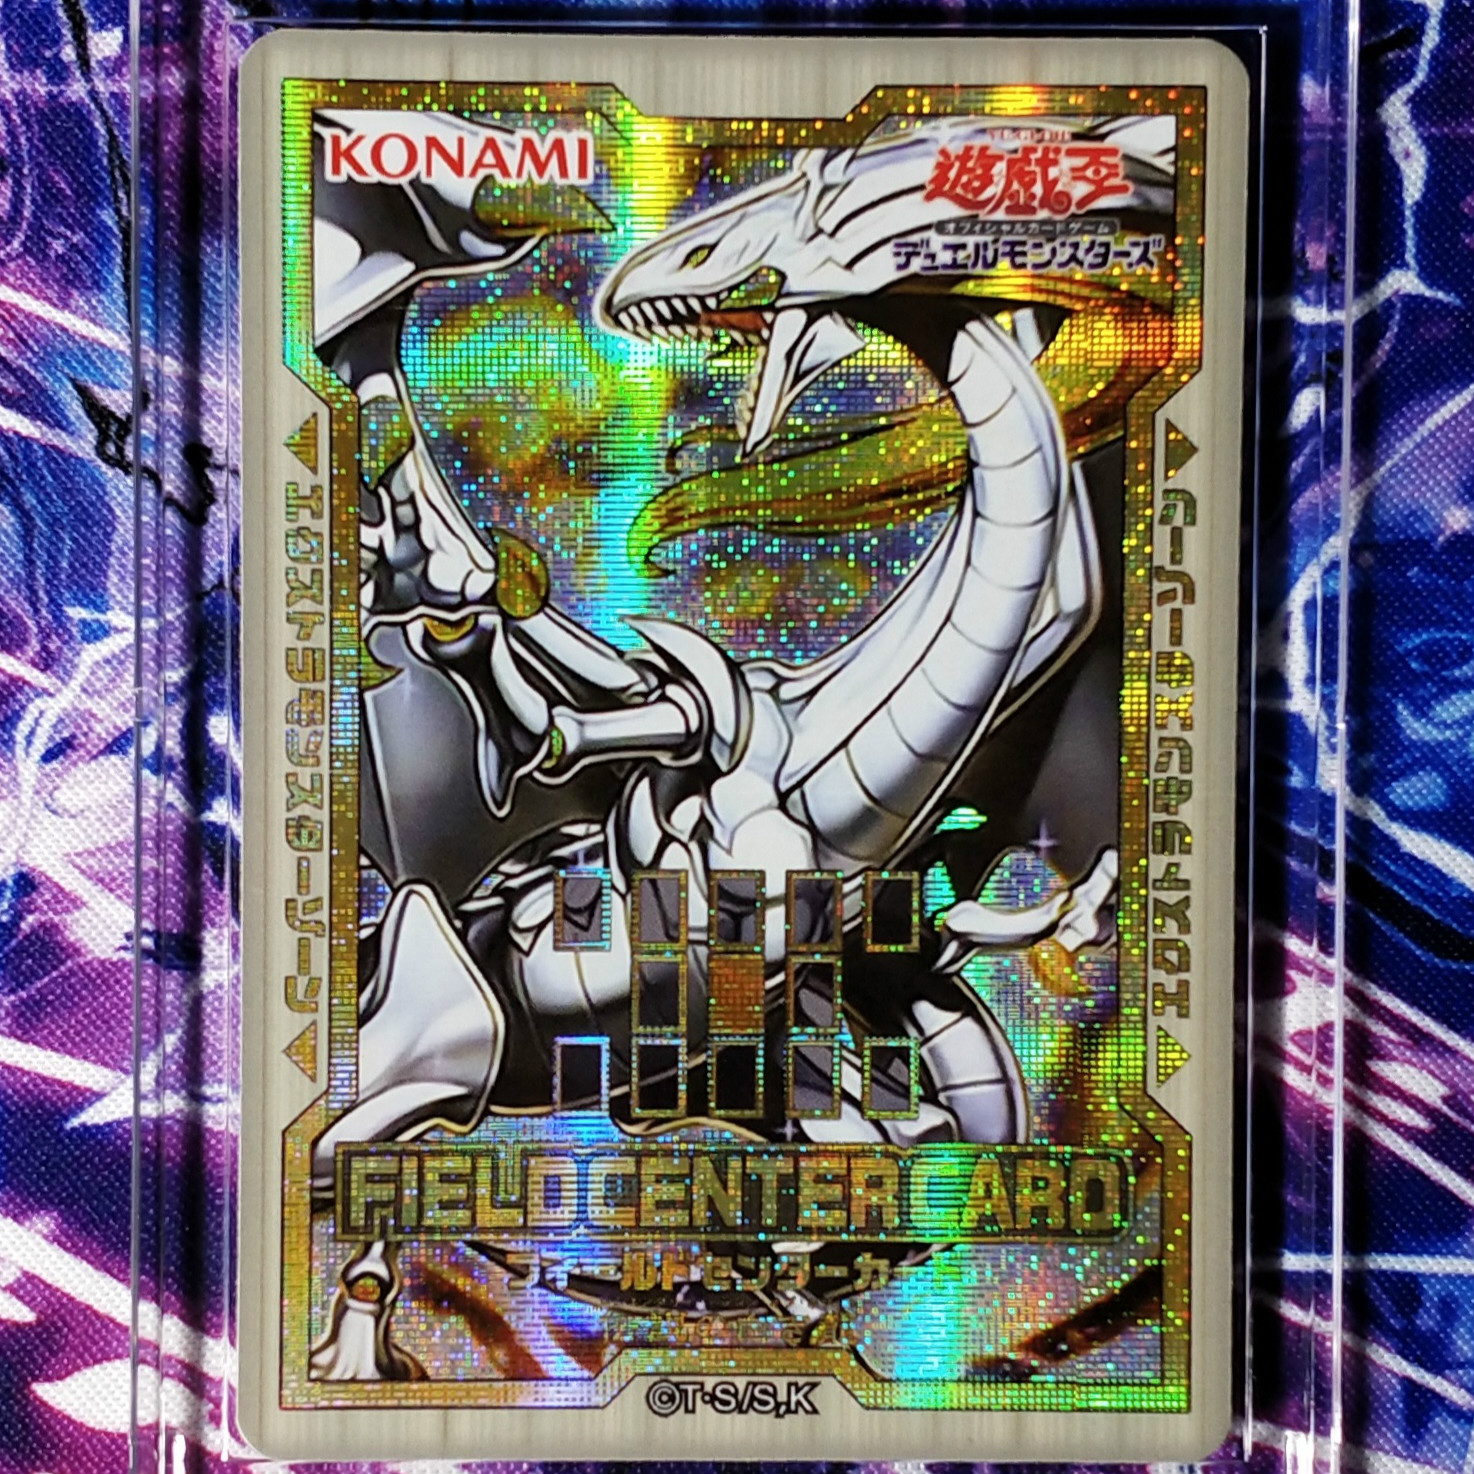 Yu Gi Oh Legendary Dragon Of White DIY Colorful Toys Hobbies Hobby Collectibles Game Collection Anime Cards